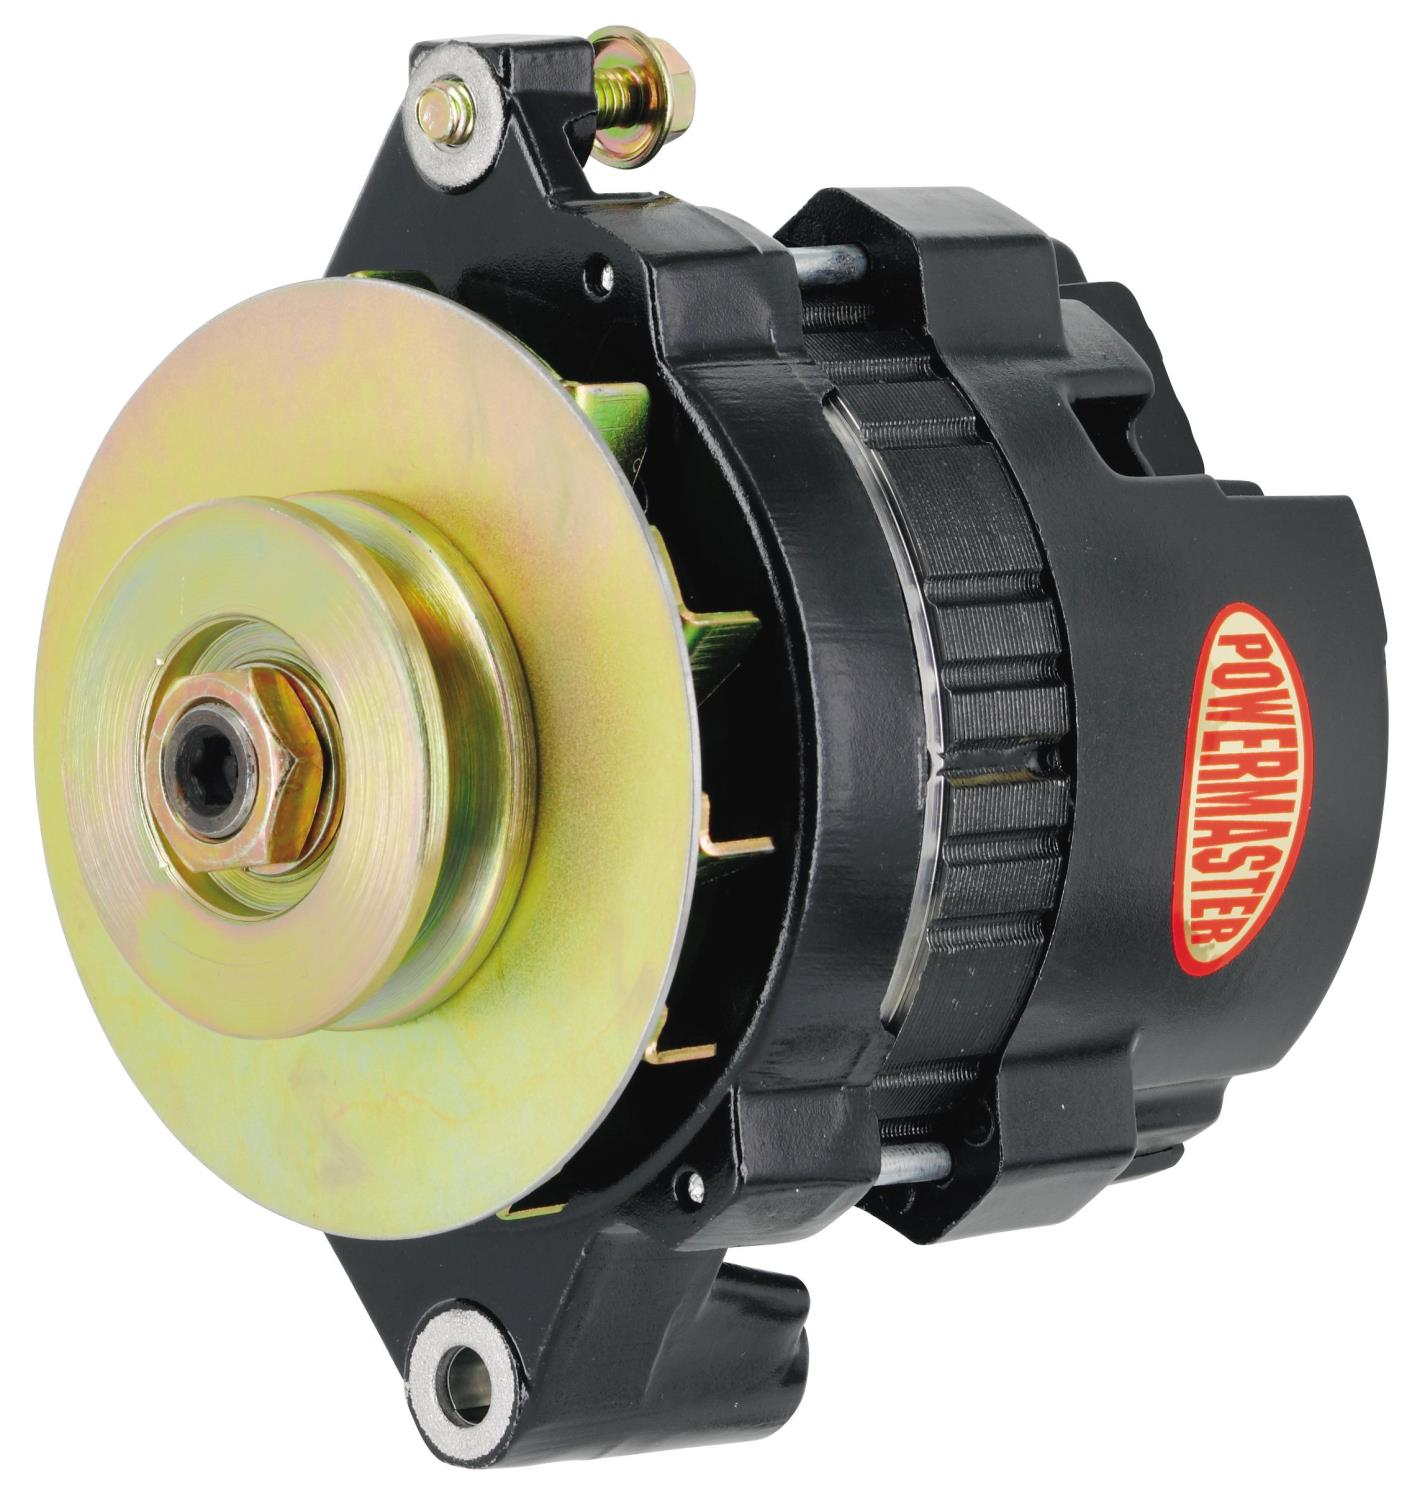 Powermaster 8466 - Powermaster GM CS121 Style 5x5 Compact Race Alternators